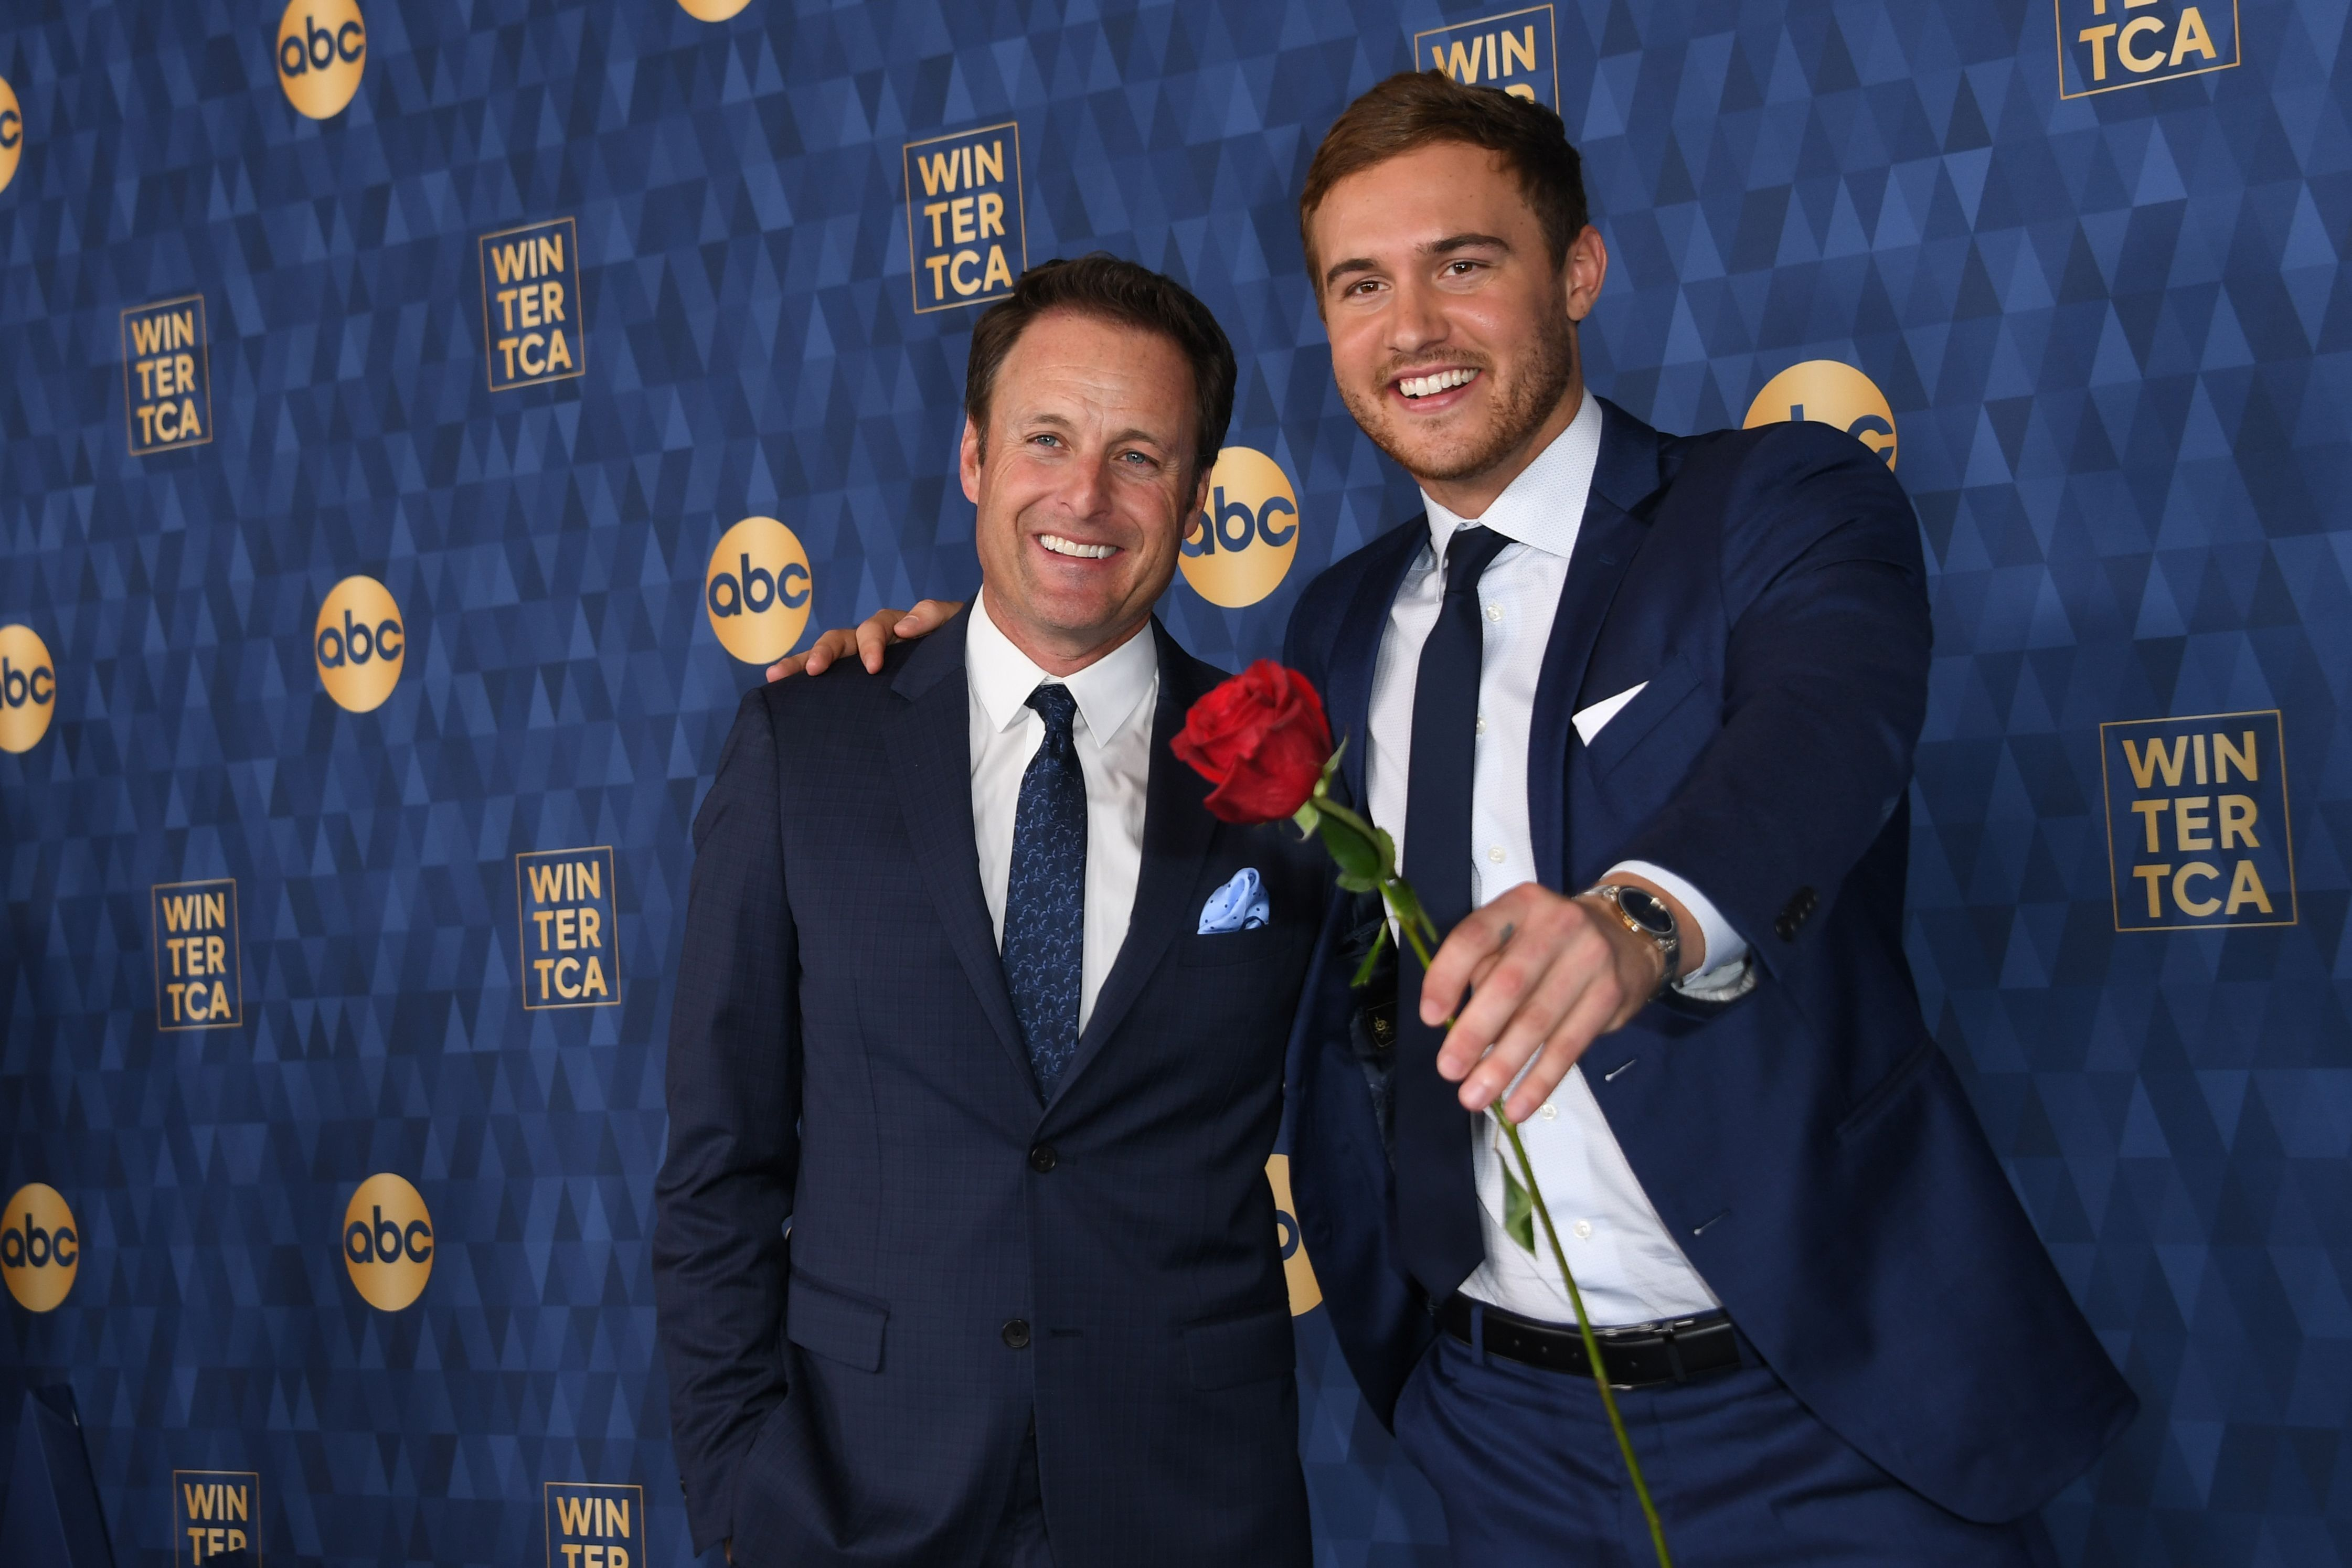 Chris Harrison (left) poses with Peter Weber (right) who holds out a rose